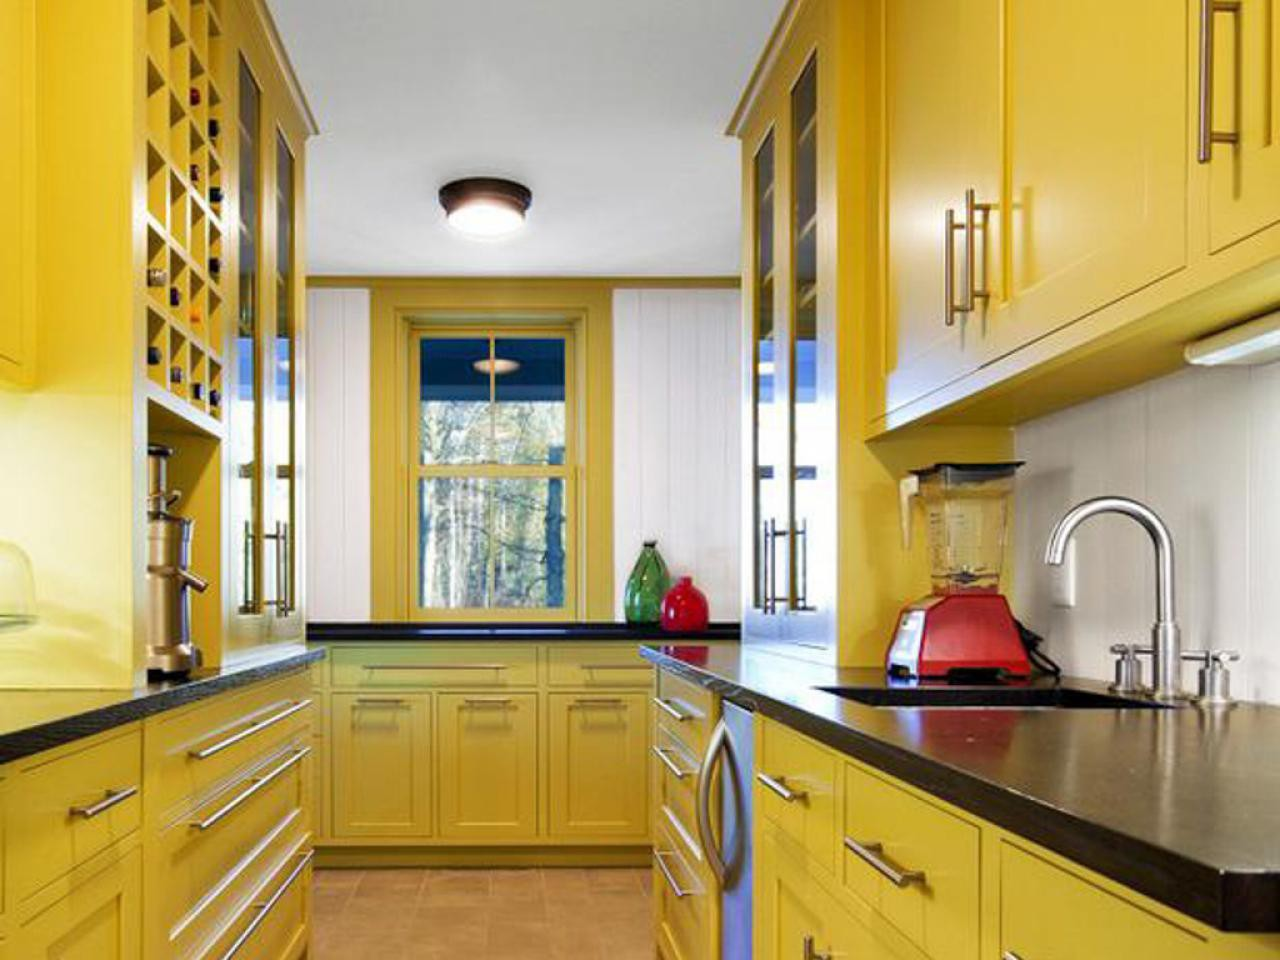 20. Completely Yellow Kitchen